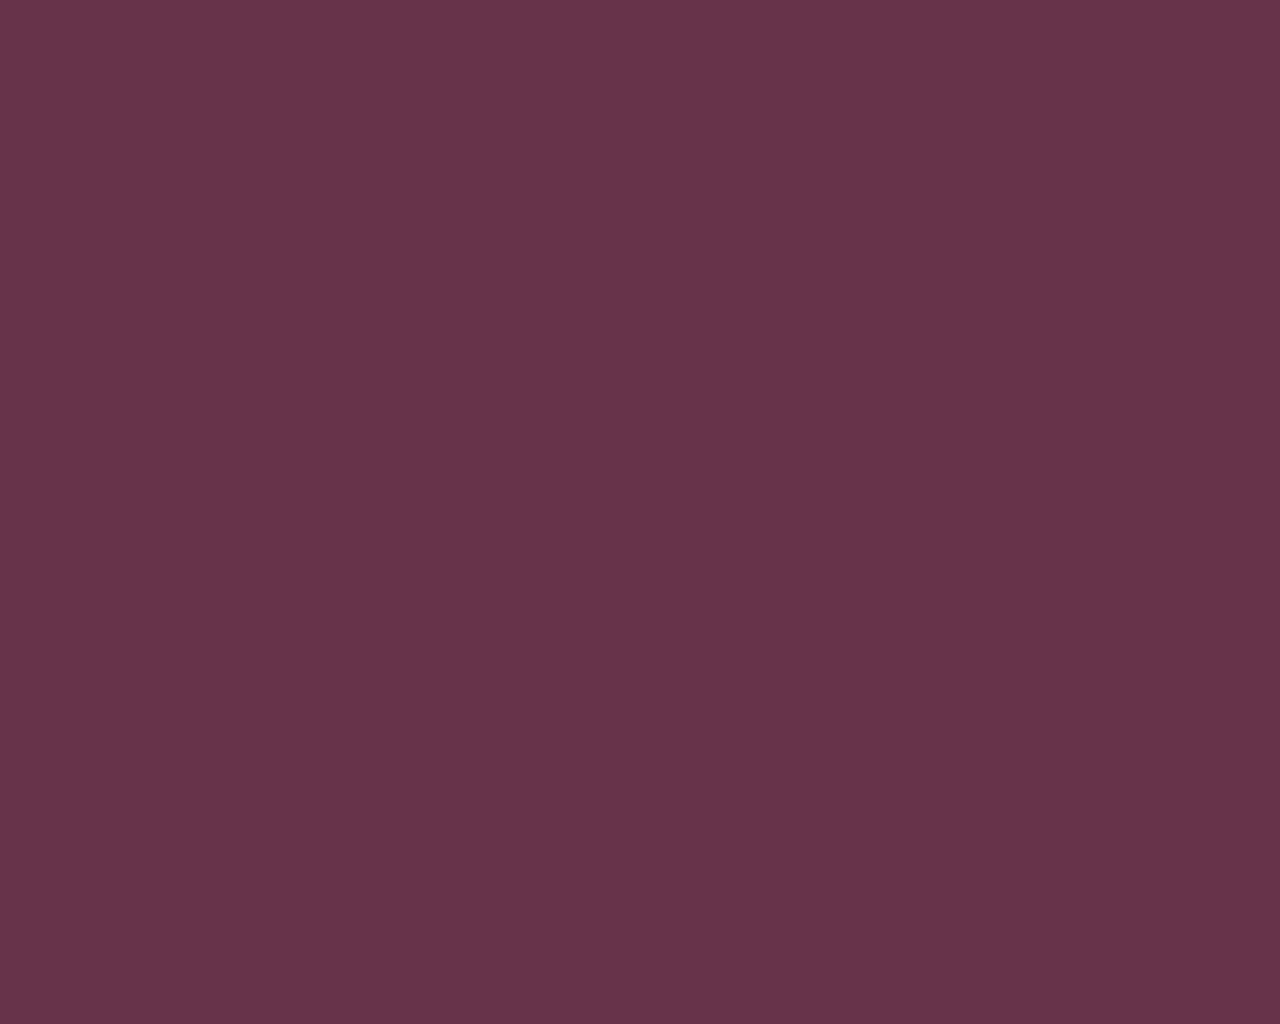 1280x1024 Old Mauve Solid Color Background